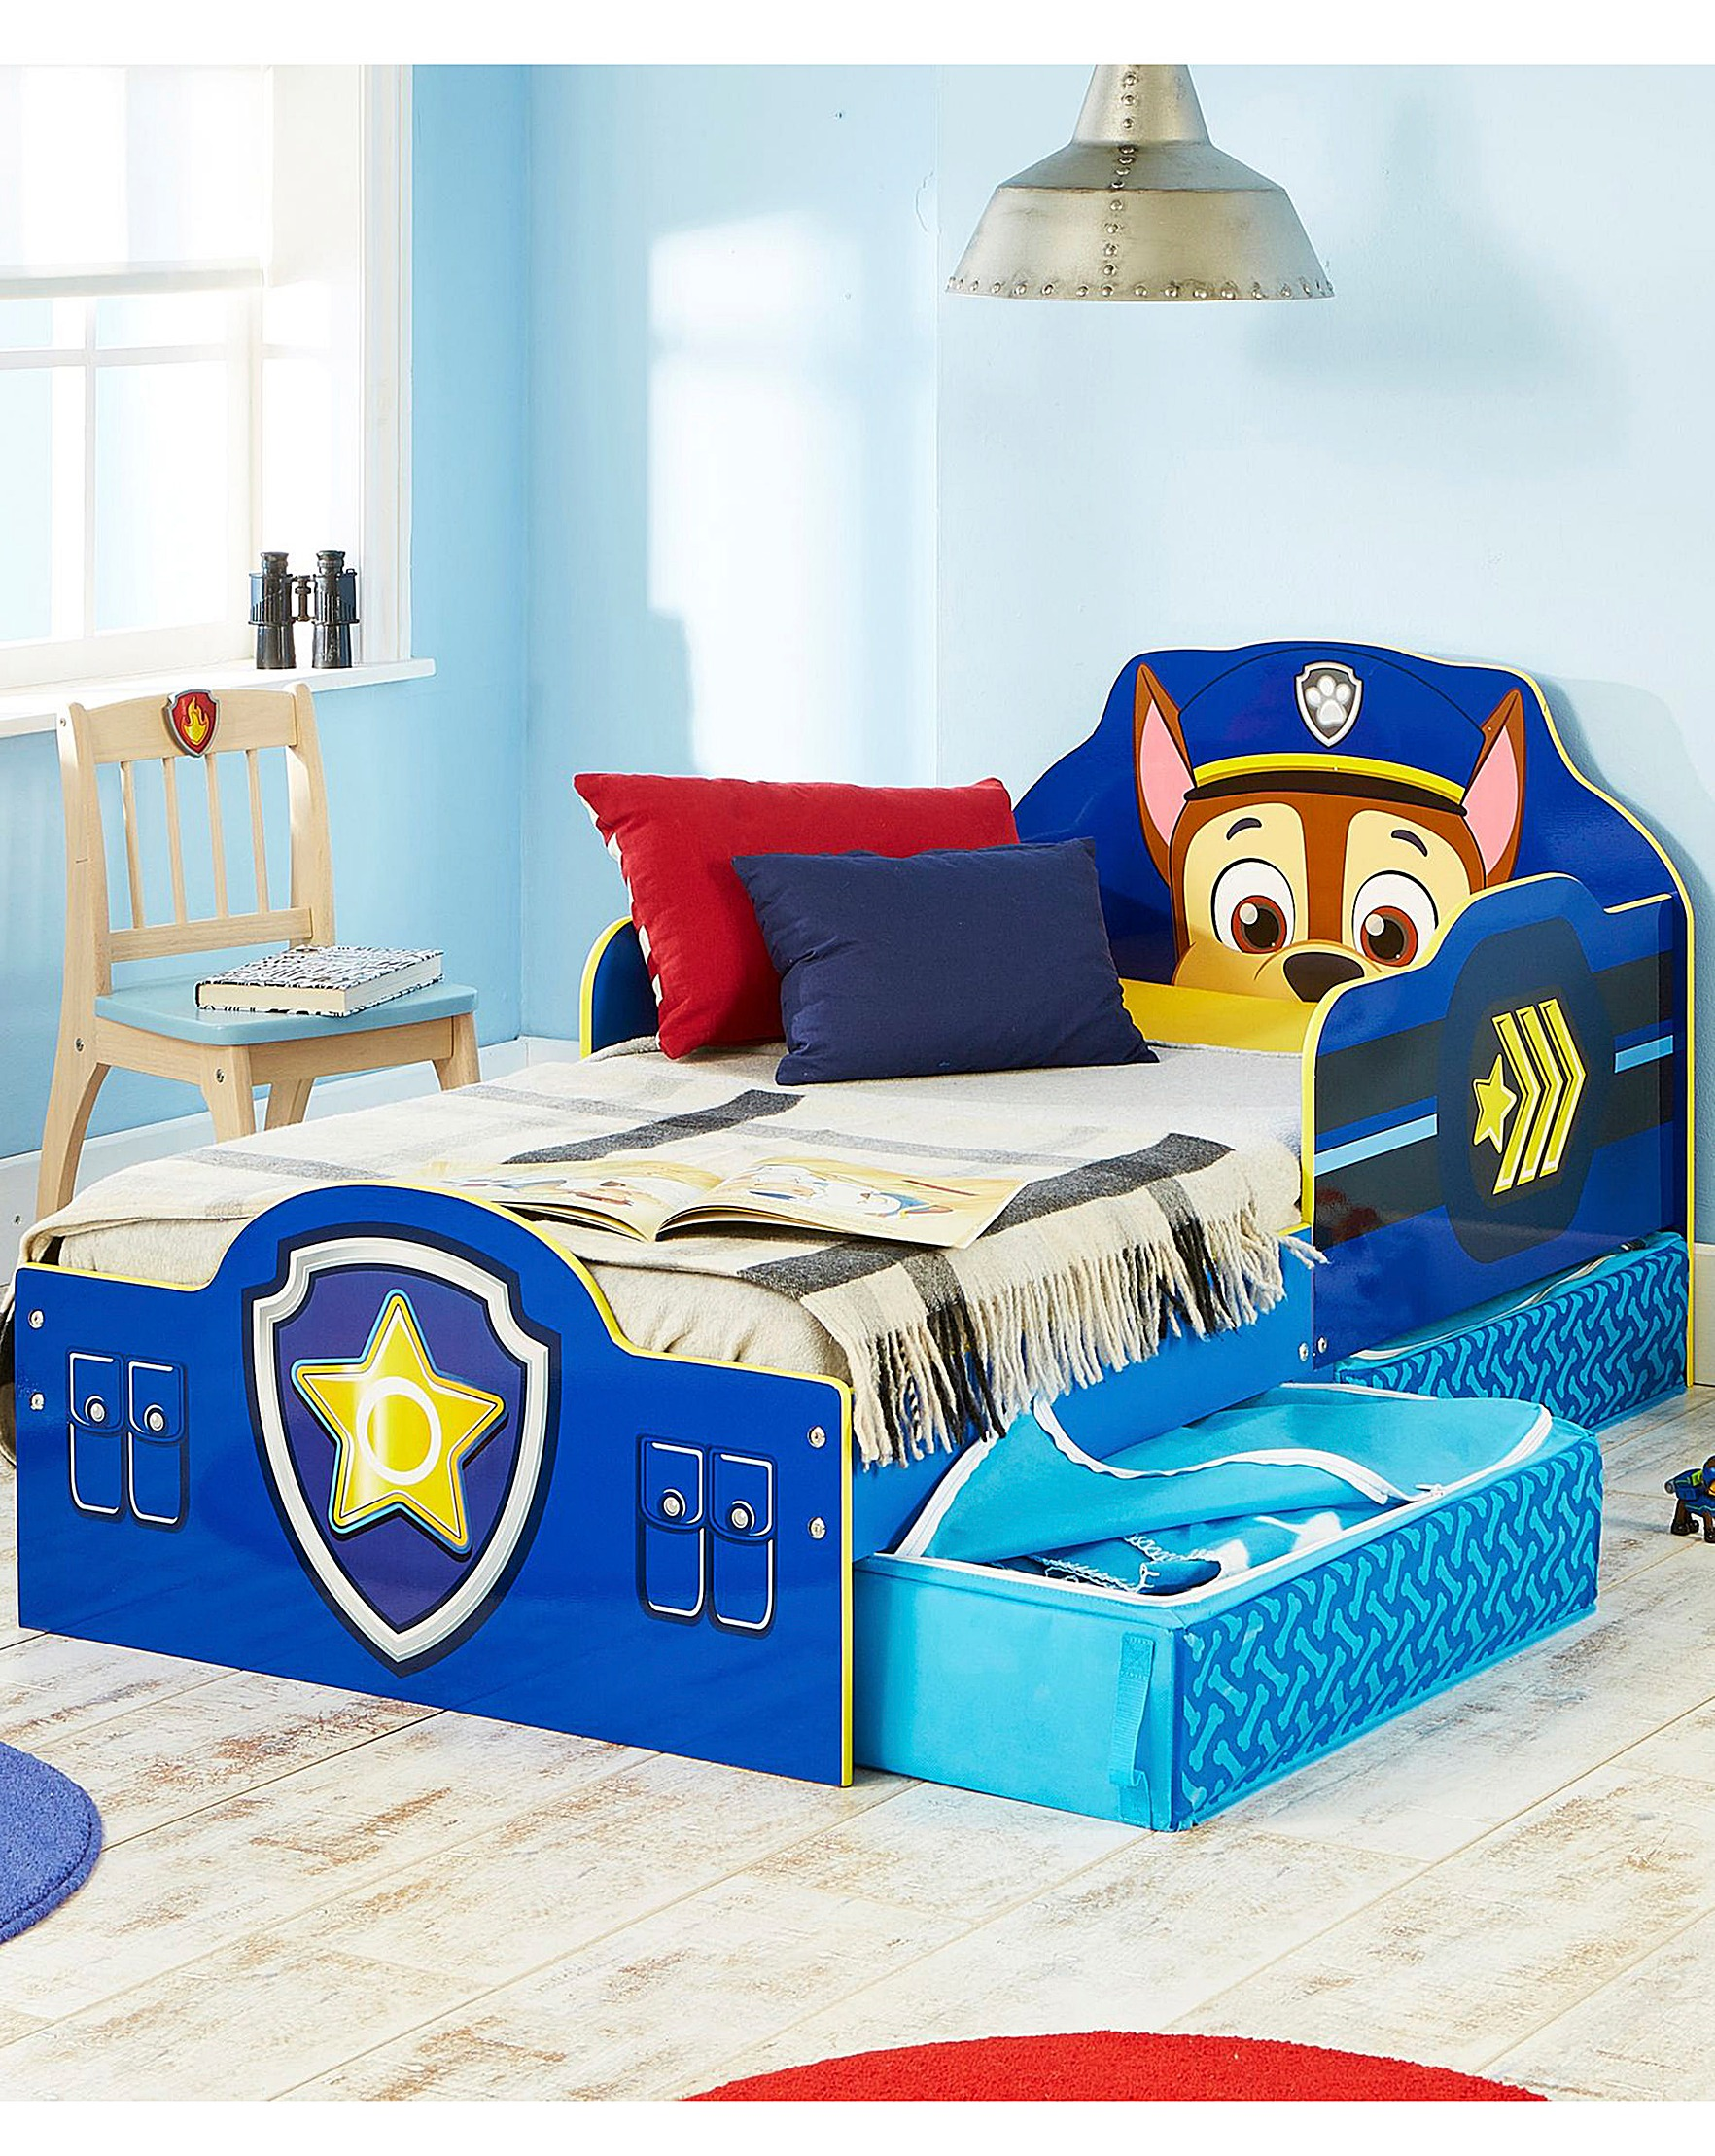 Paw Patrol Chase Toddler Bed and Storage | J D Williams